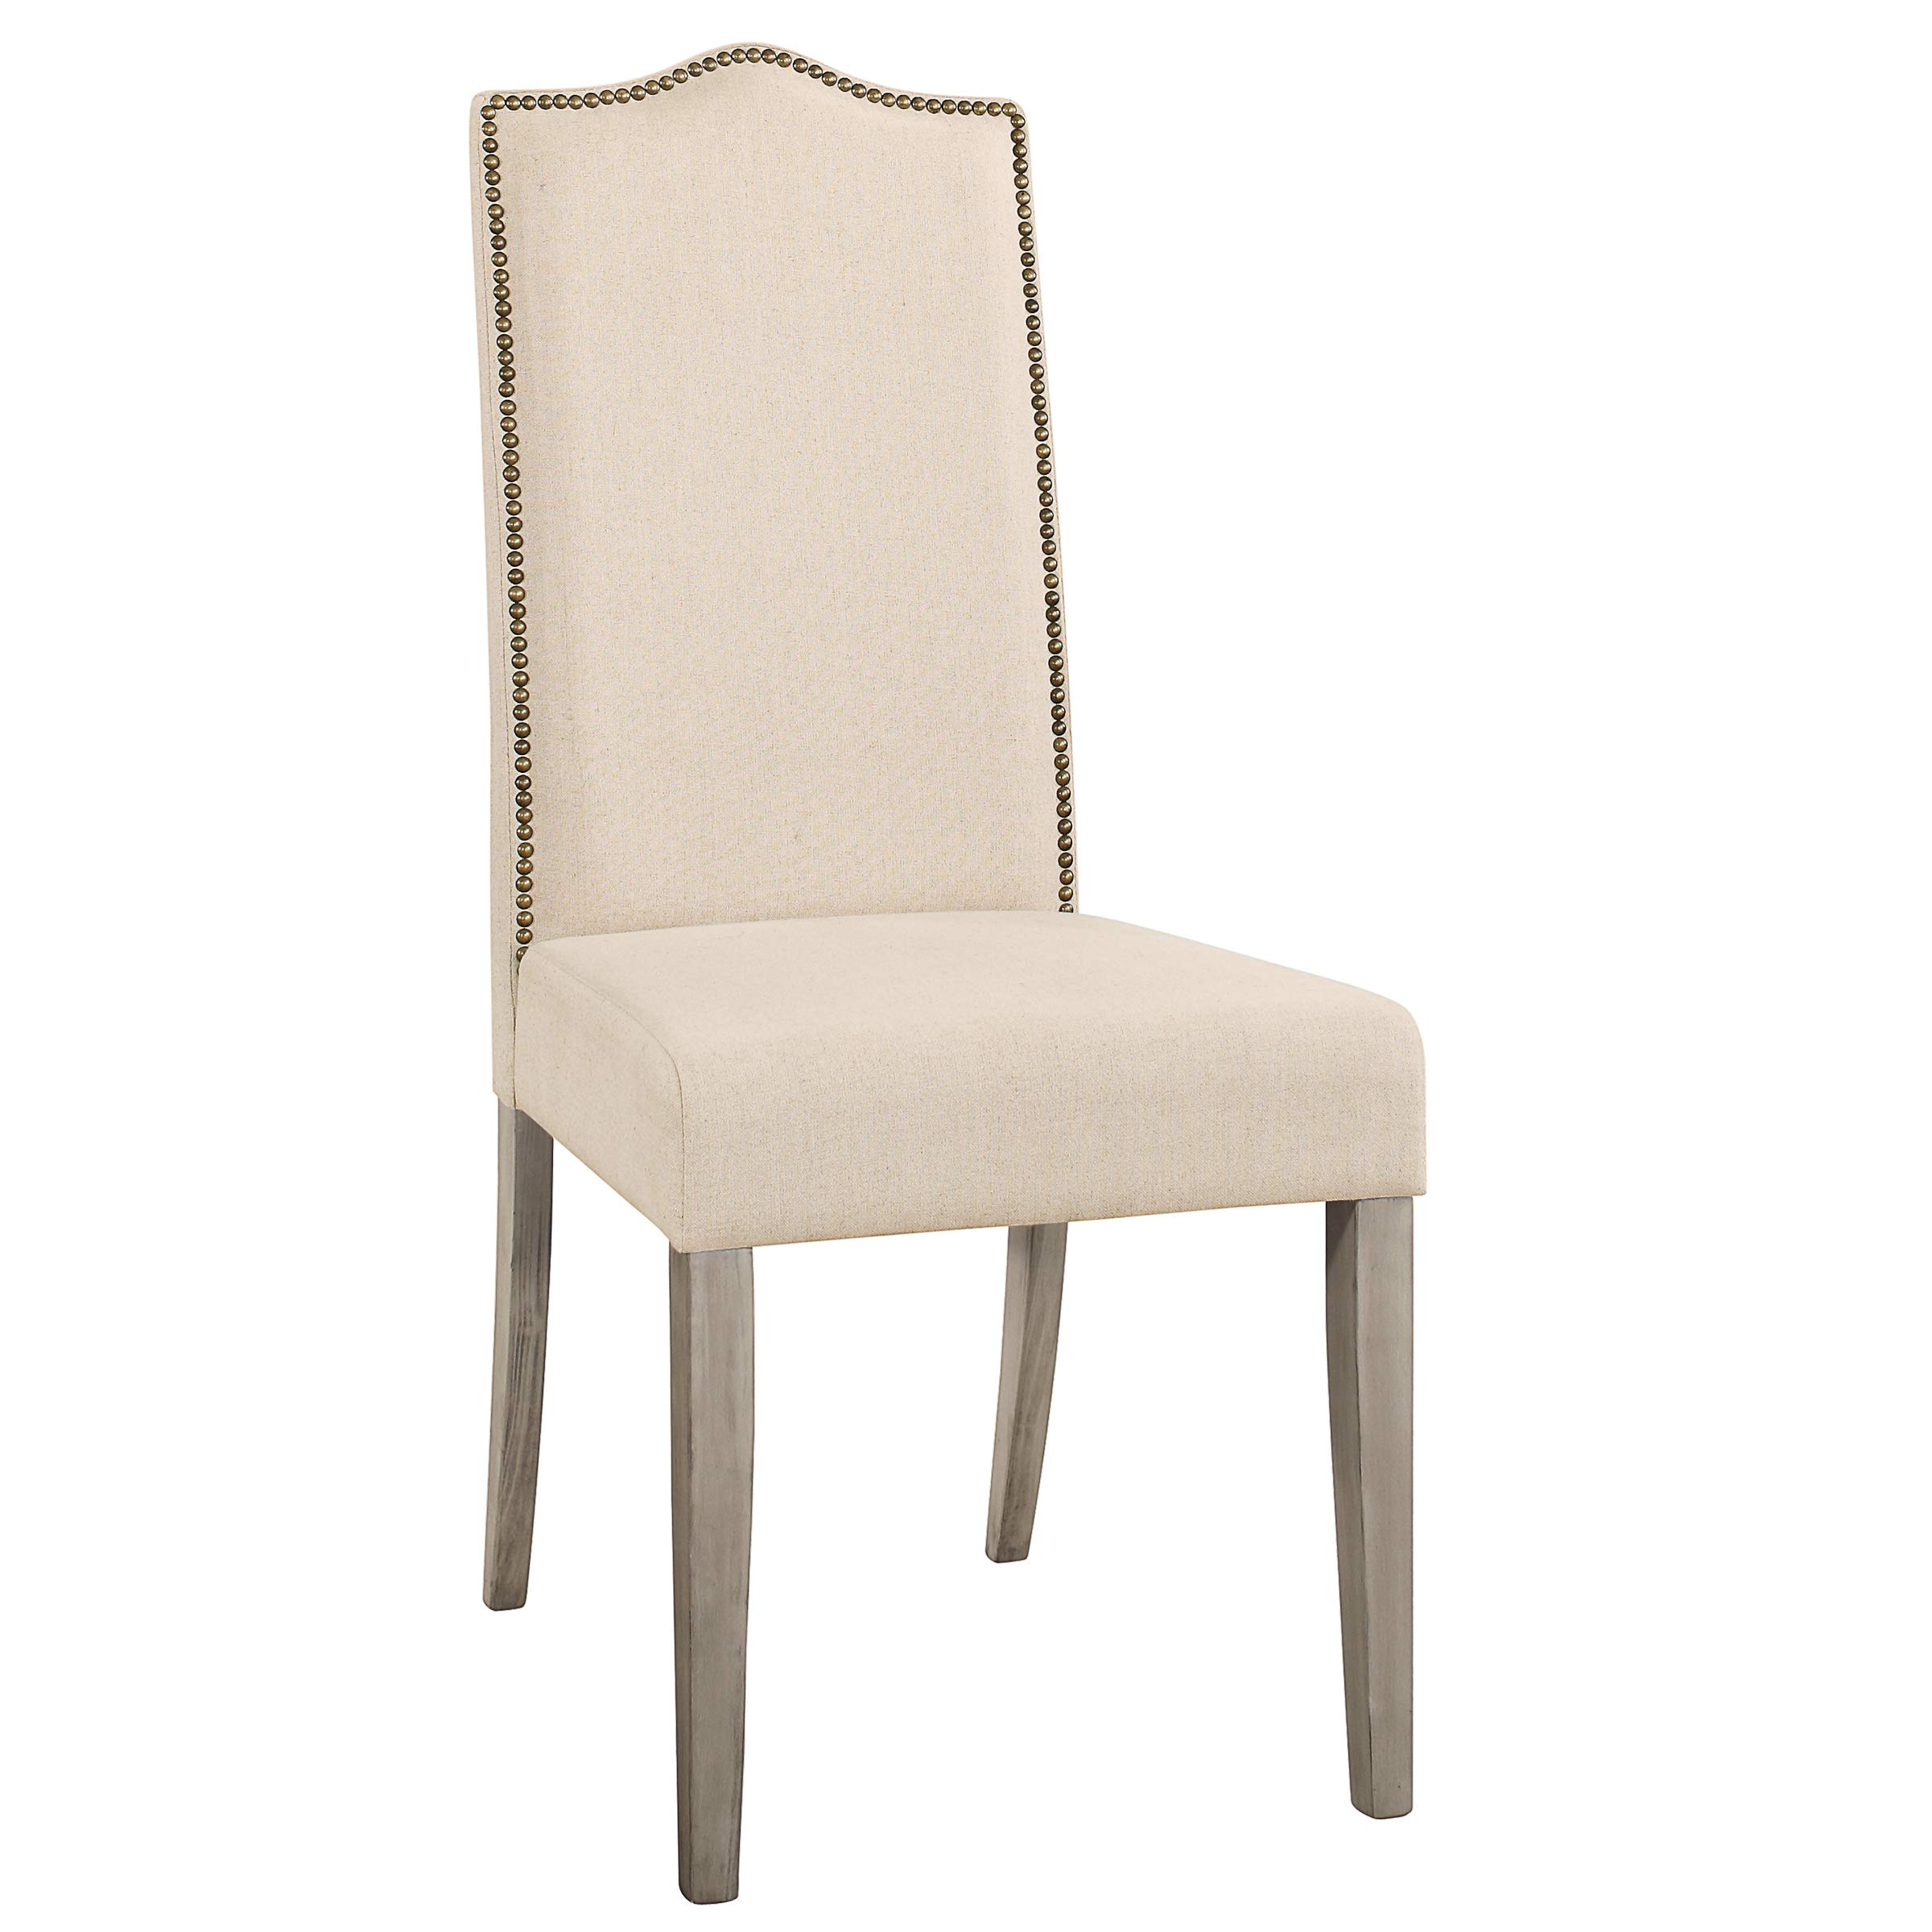 Carolina Chair and Table Romero Parson Chair in Weathered Gray